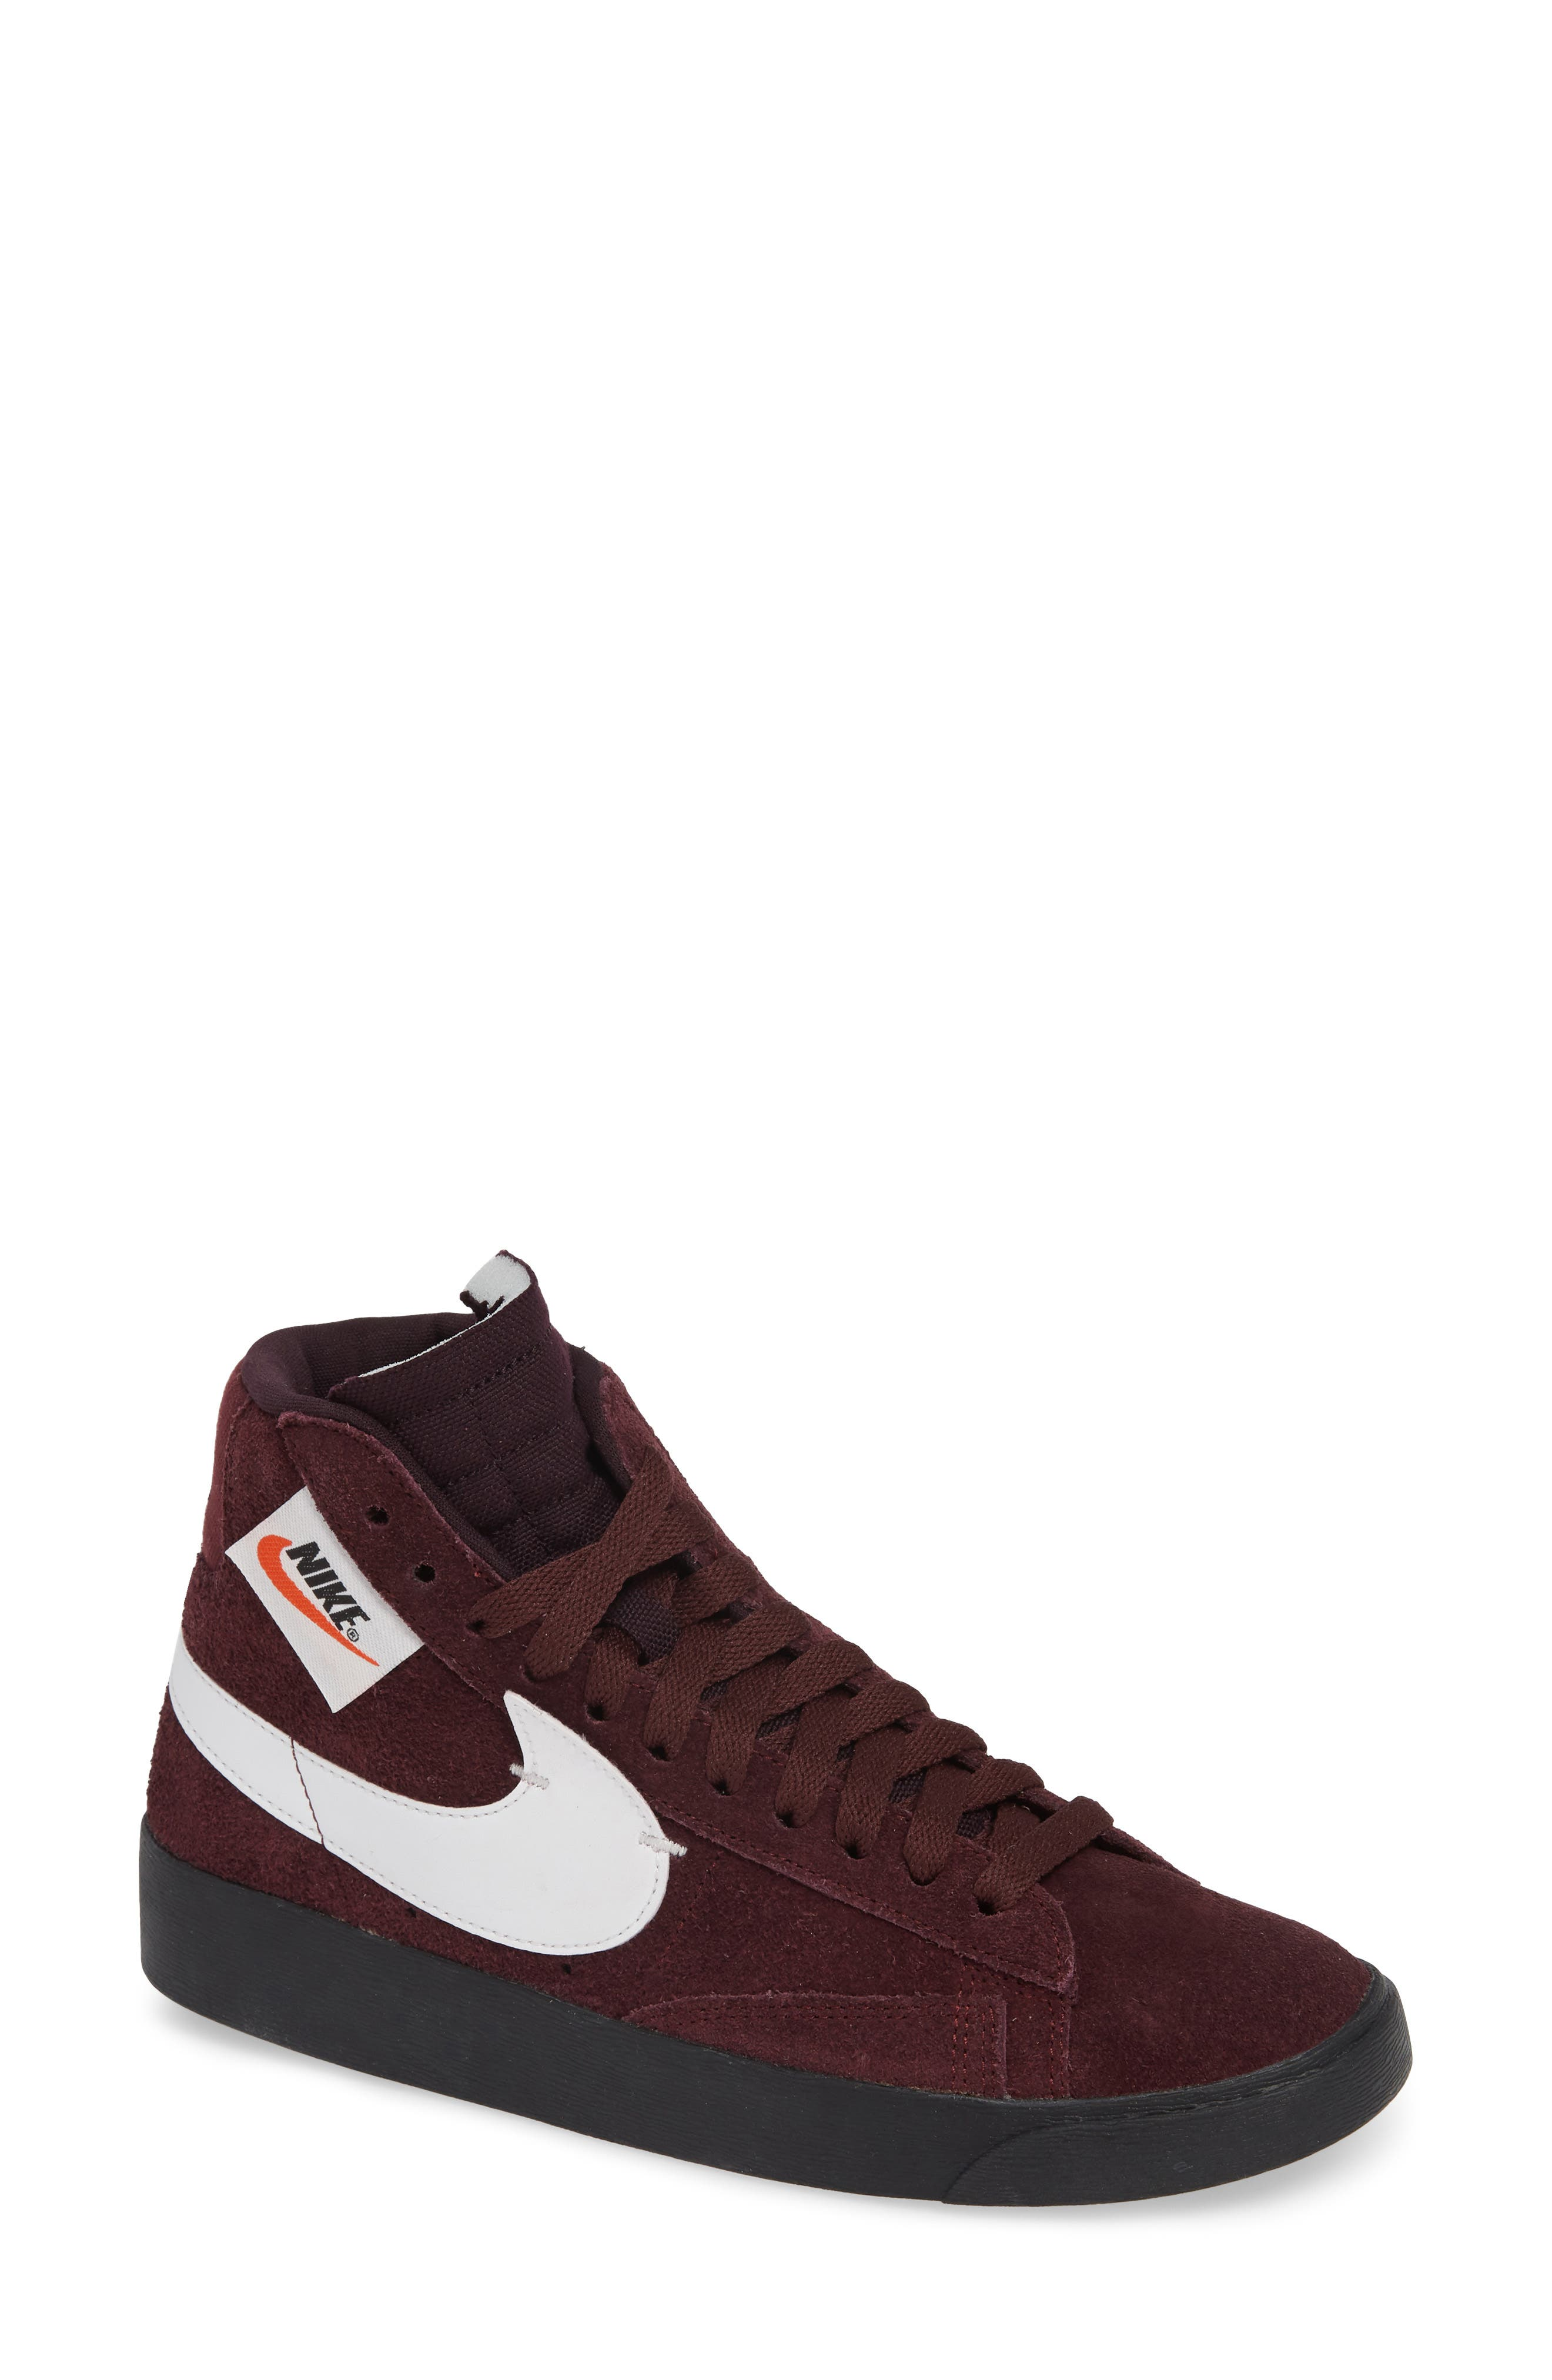 Blazer Mid Rebel Sneaker,                             Main thumbnail 1, color,                             BURGUNDY CRUSH/ ASH- WHITE